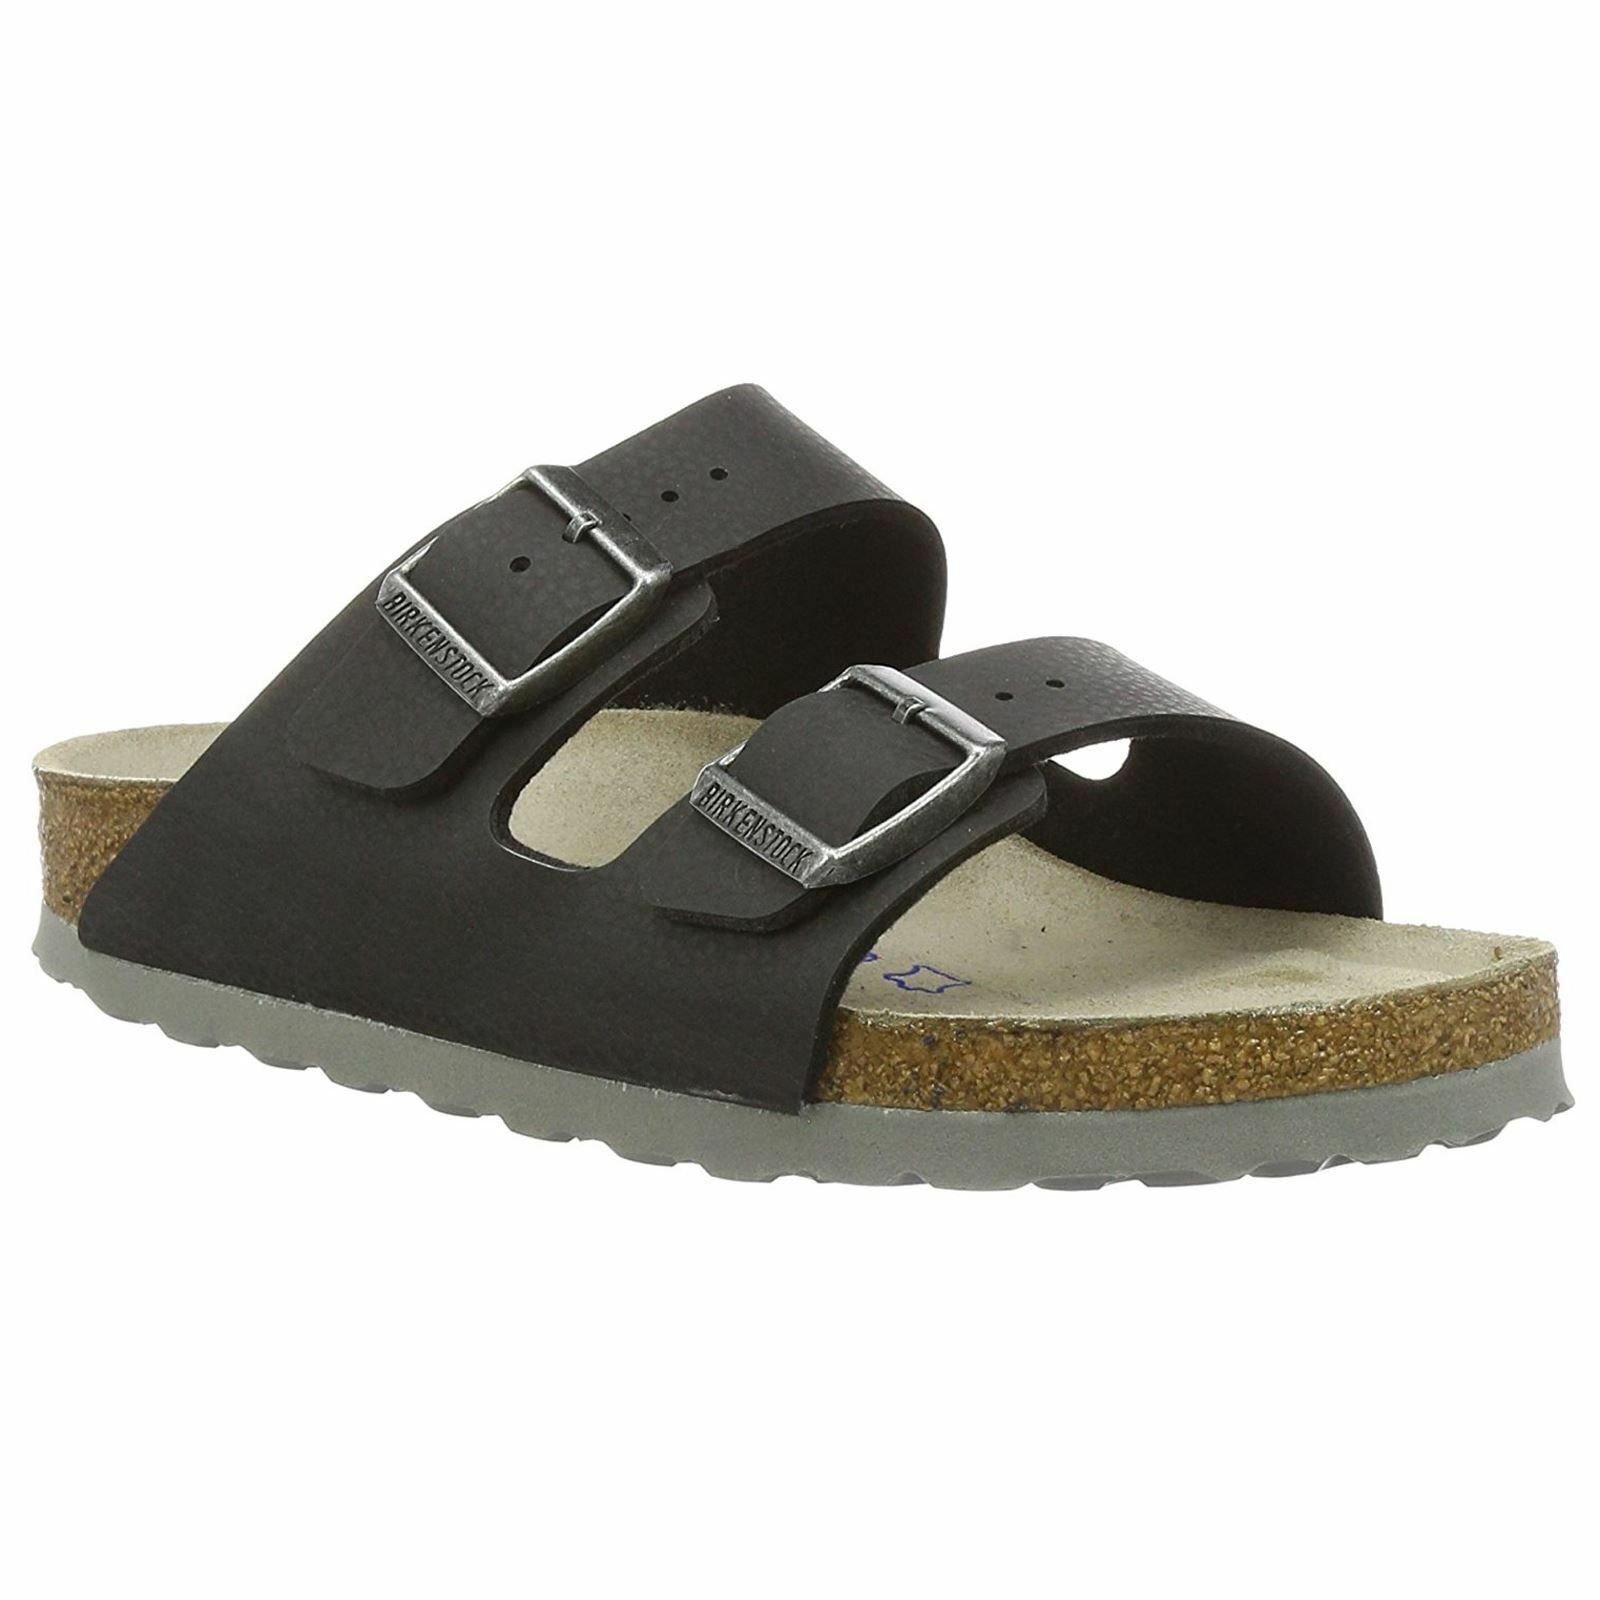 Último gran descuento Birkenstock Arizona Desert Soil Black Womens Birko-Flor Soft Footbed Sandals